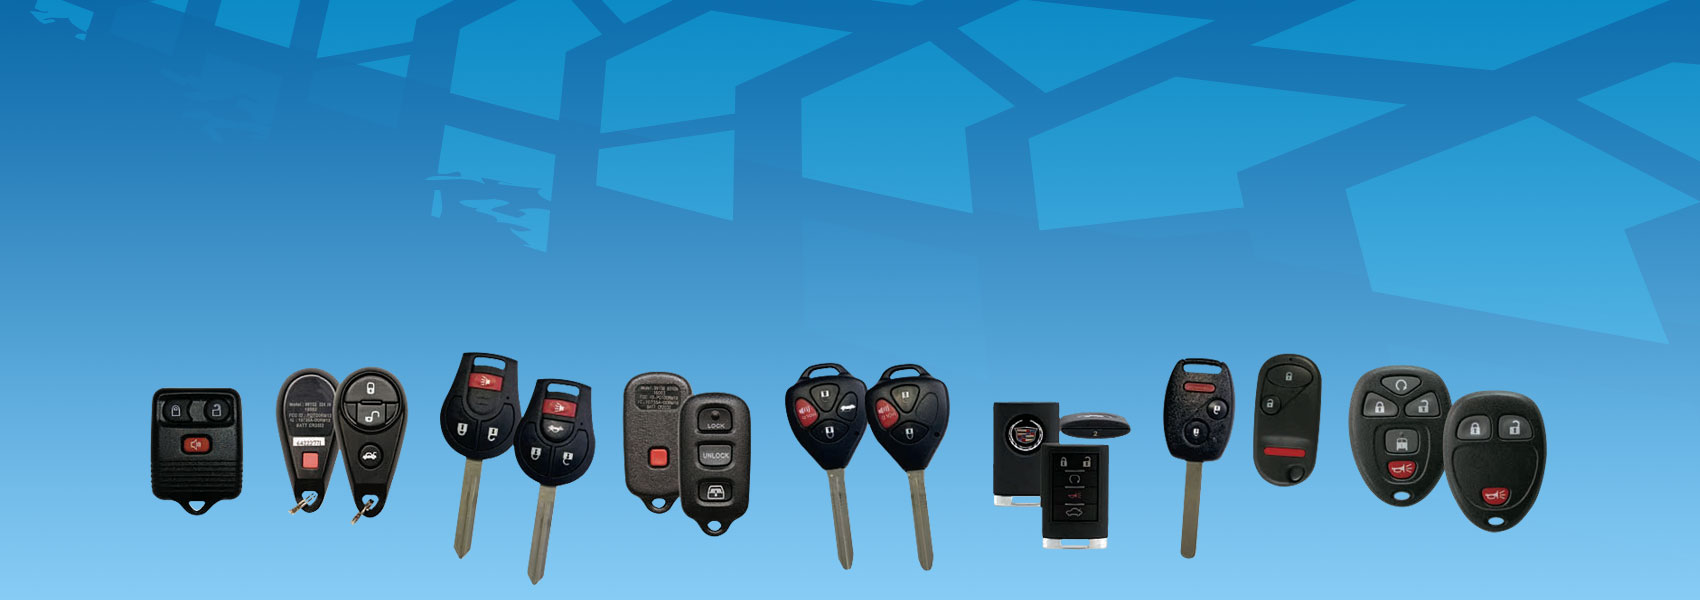 Remote keyless entry, remote head keys and proximity remotes.